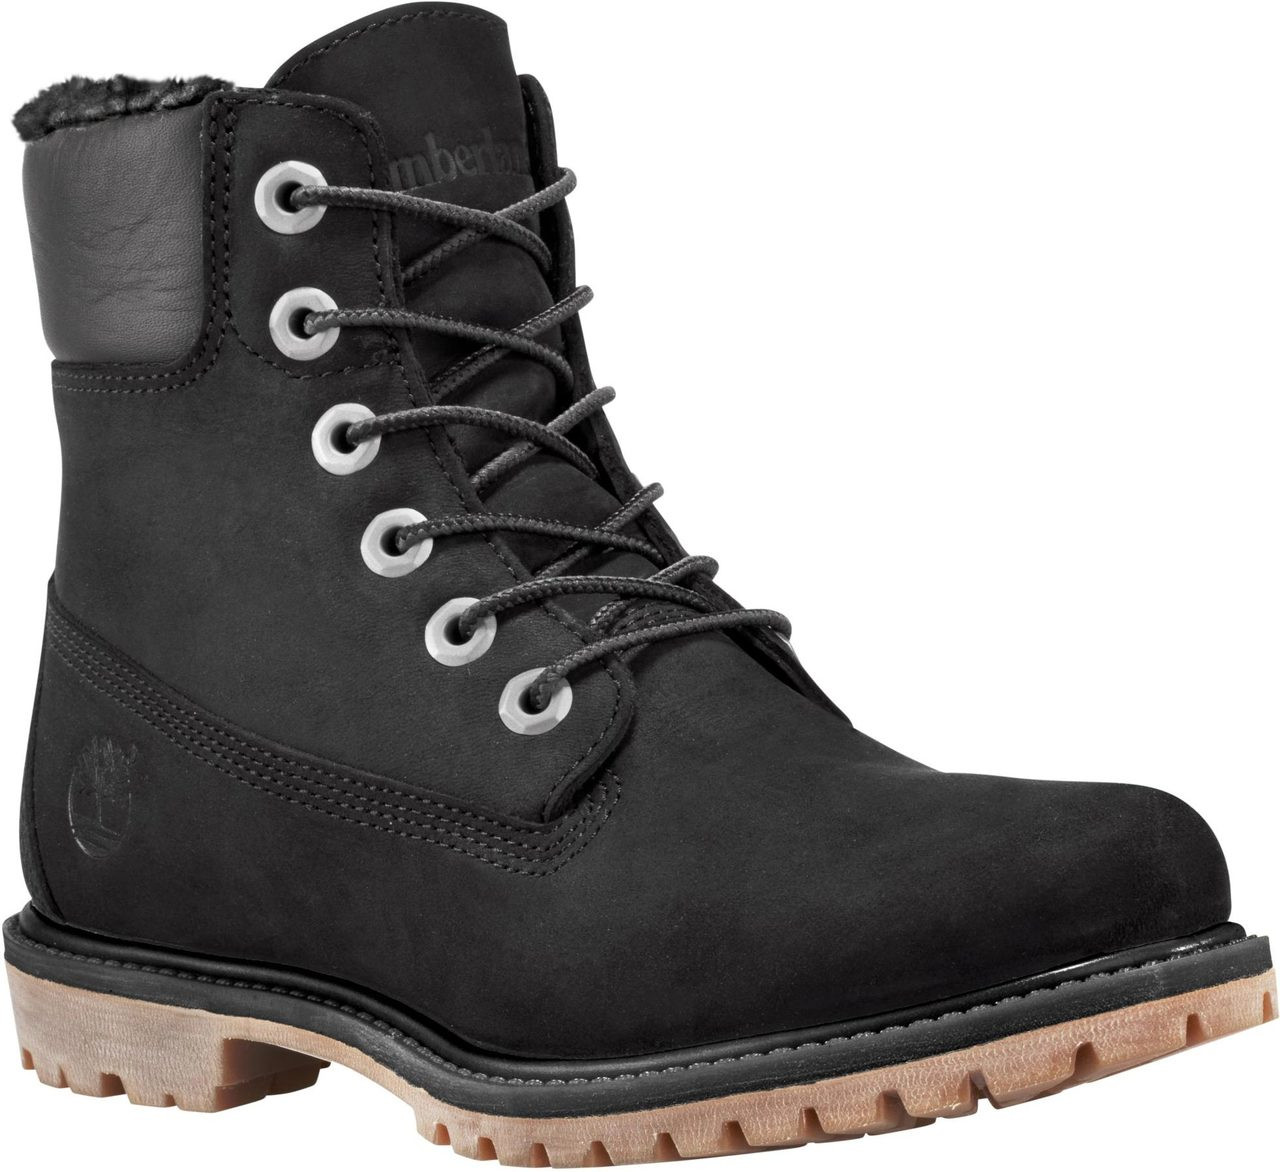 ... Shop By Style · Boots; Timberland Women's 6-Inch Premium Fleece-Lined.  Black Nubuck